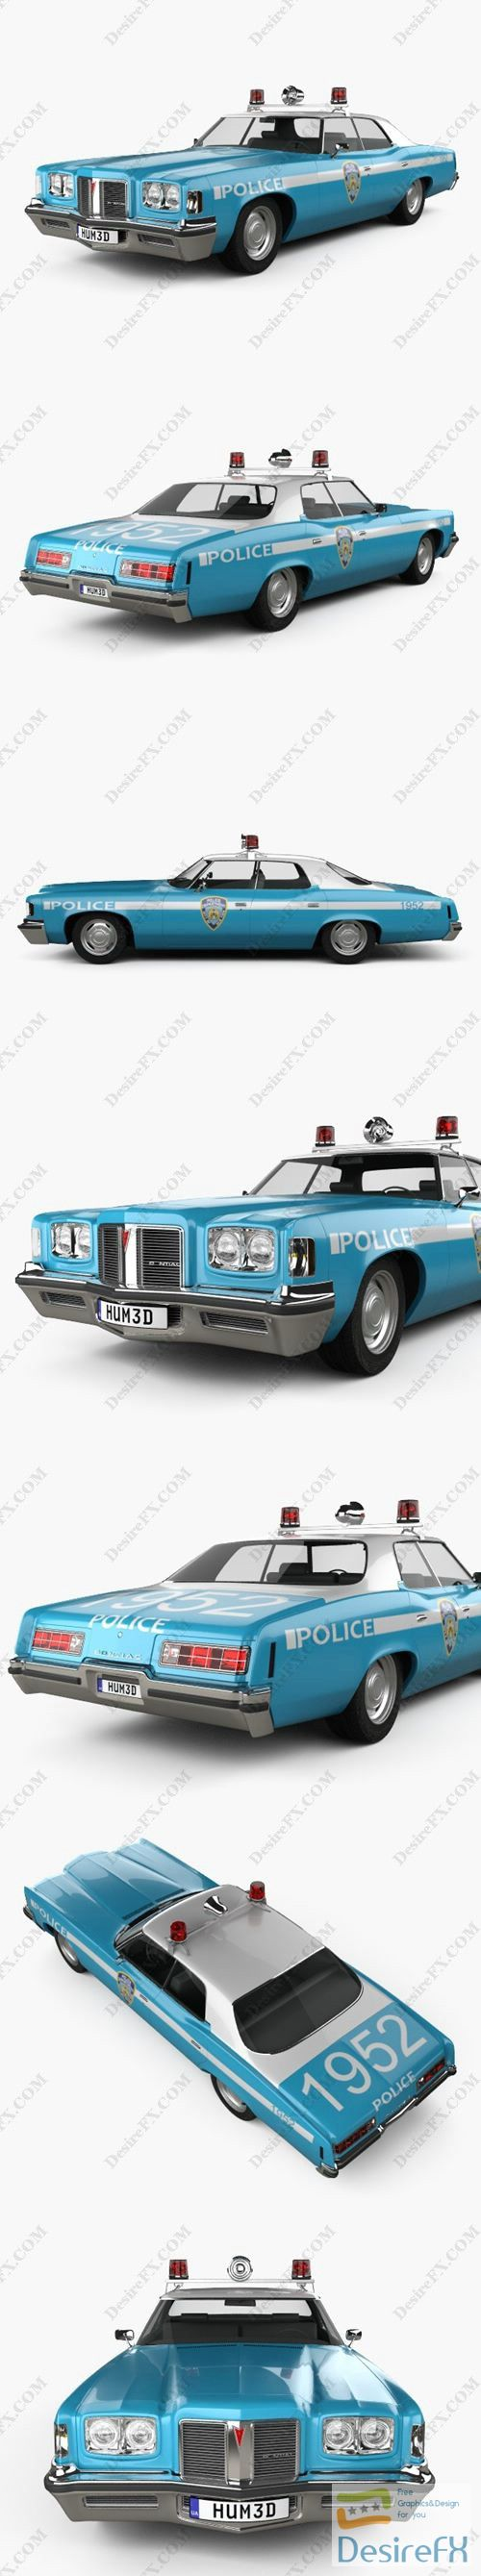 Pontiac Catalina Police 1972 3D Model